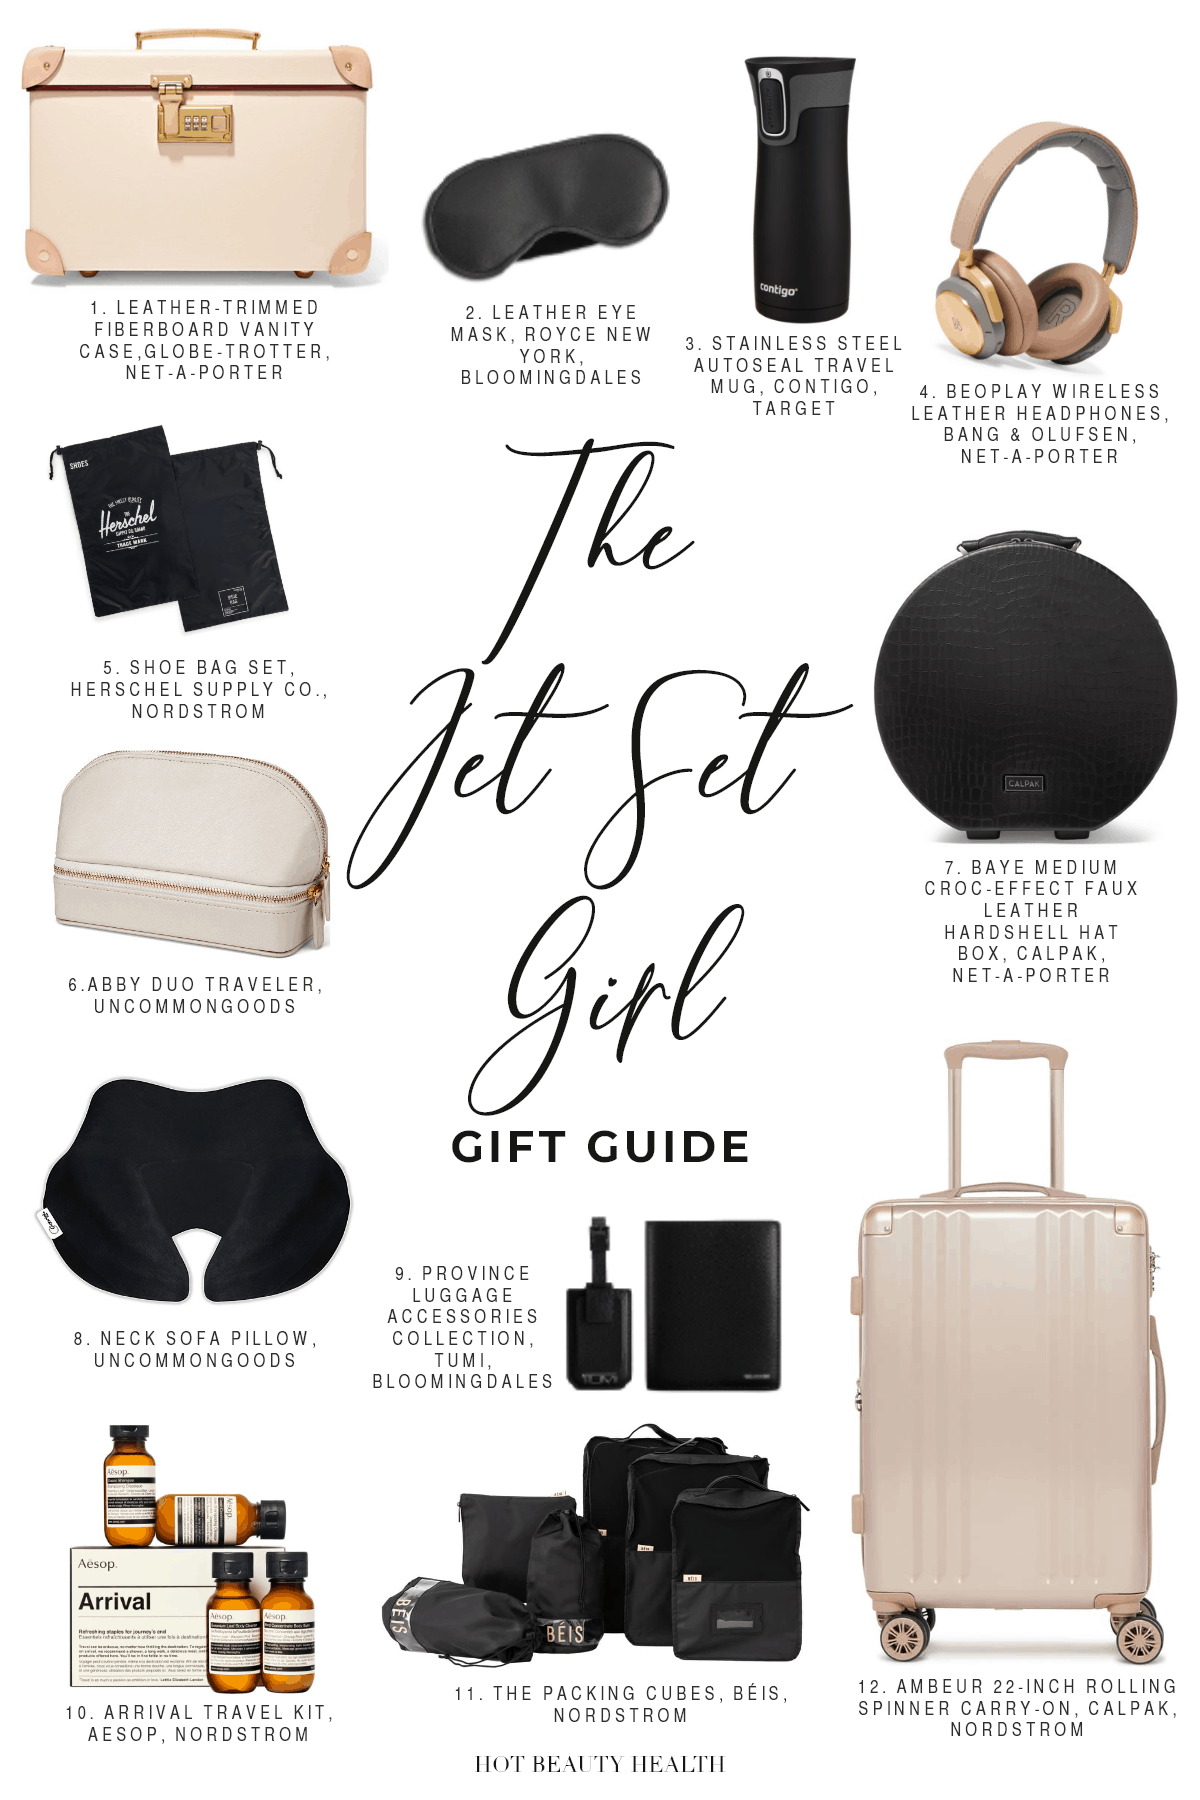 The Jet Set Girl Holiday Gift Guide 2019